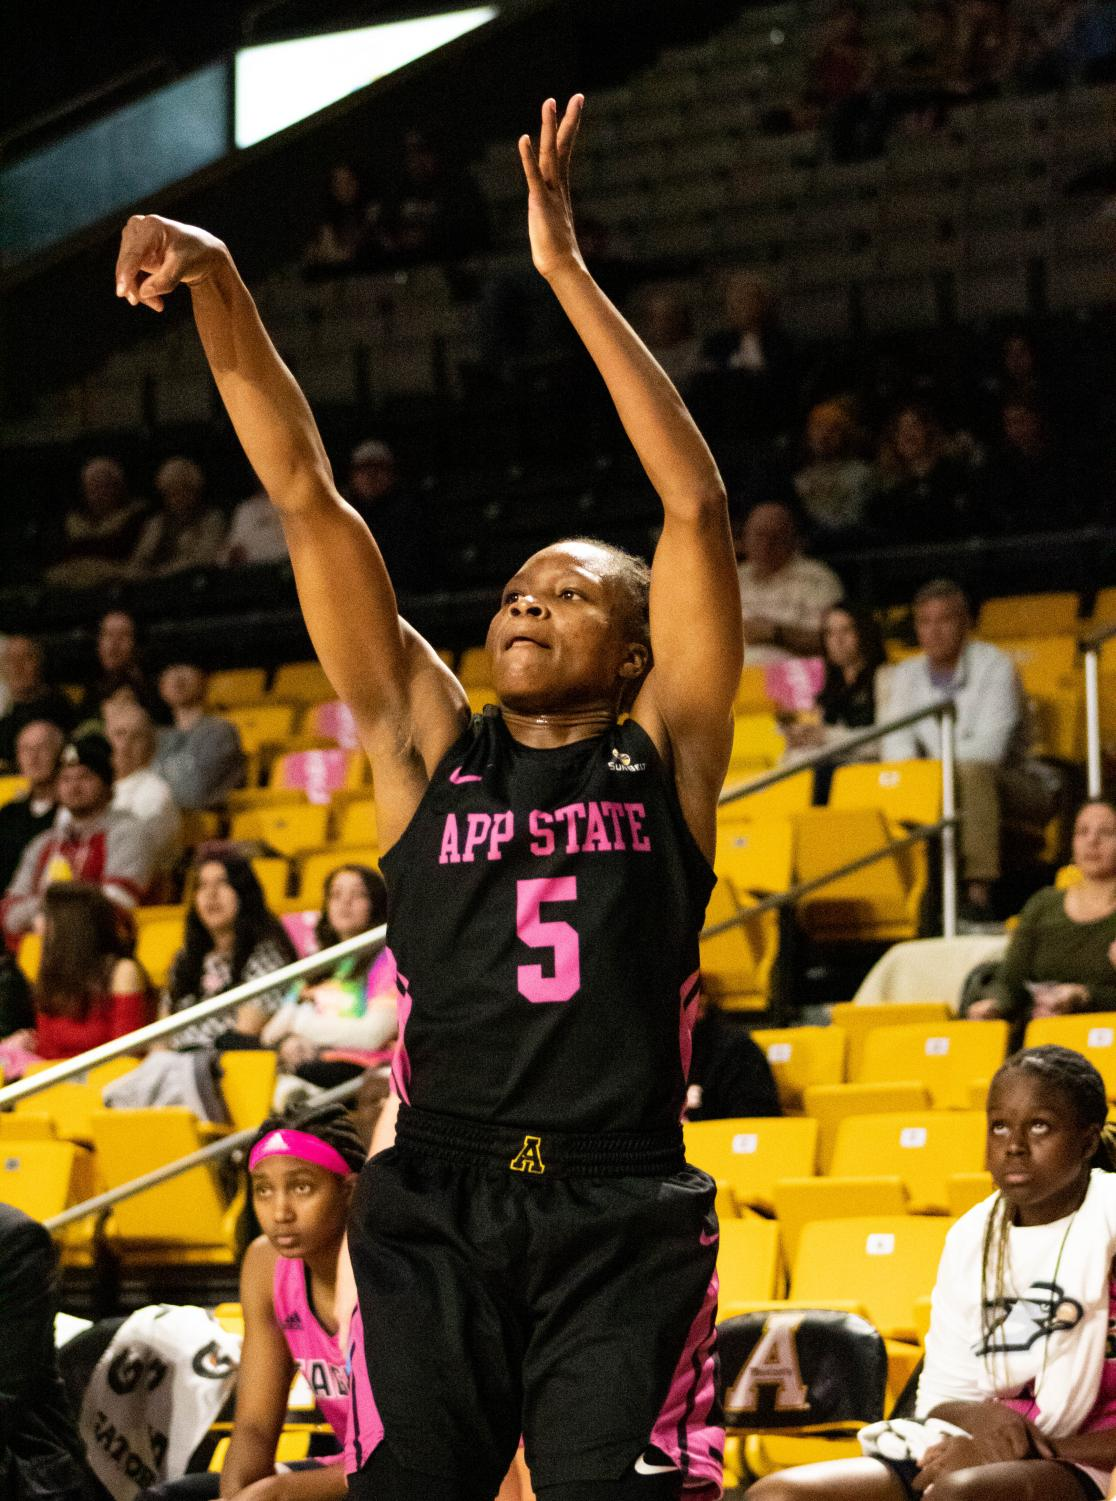 Junior guard Pre Stanley led all scorers with 19 points on 9-of-12 shooting in App State's 71-59 win over South Alabama on Feb. 13.